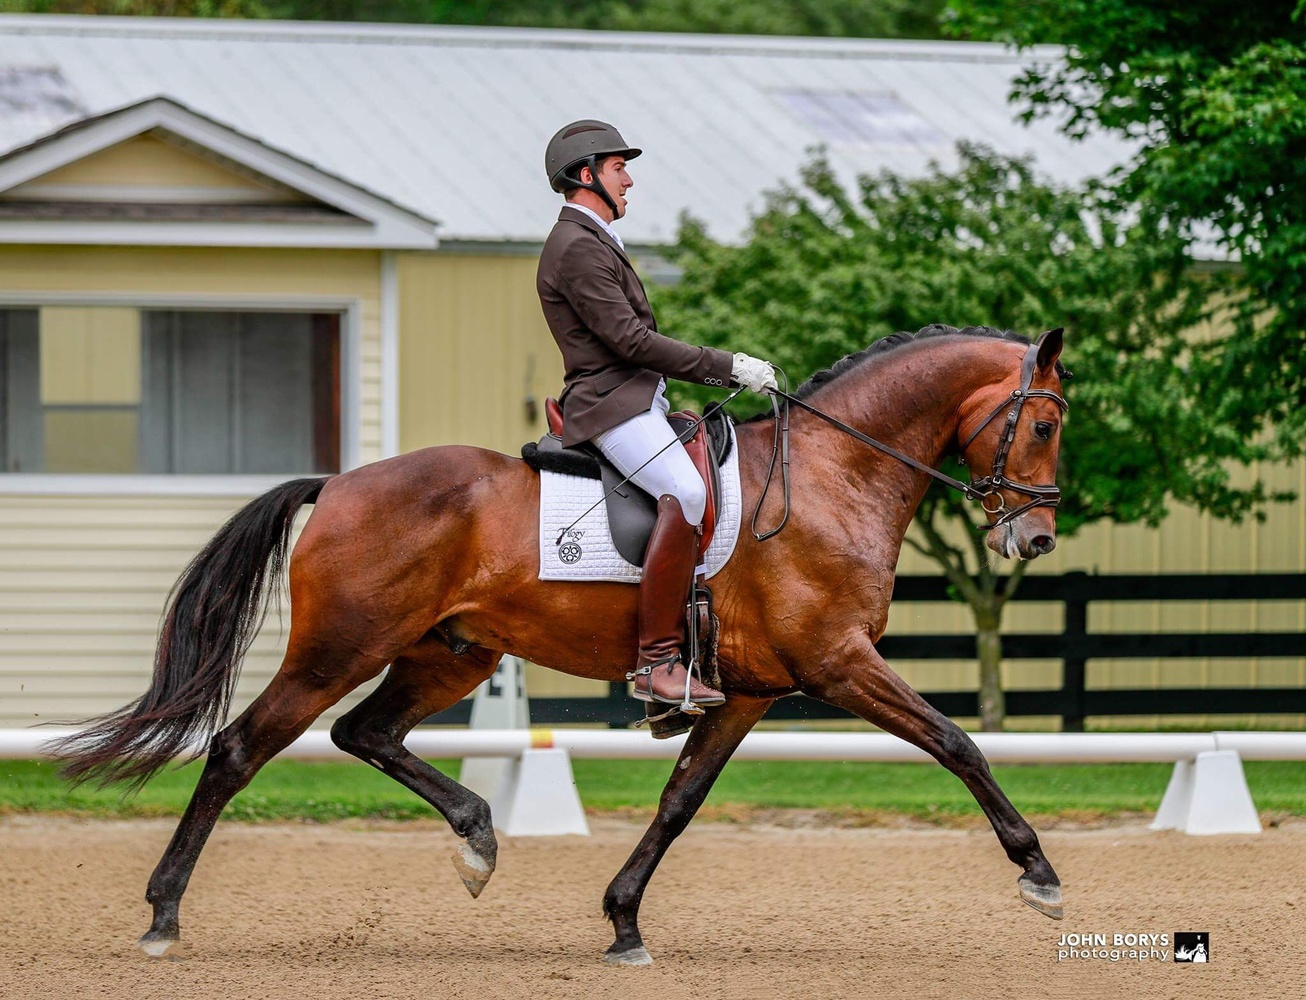 Extended Trot by John Borys